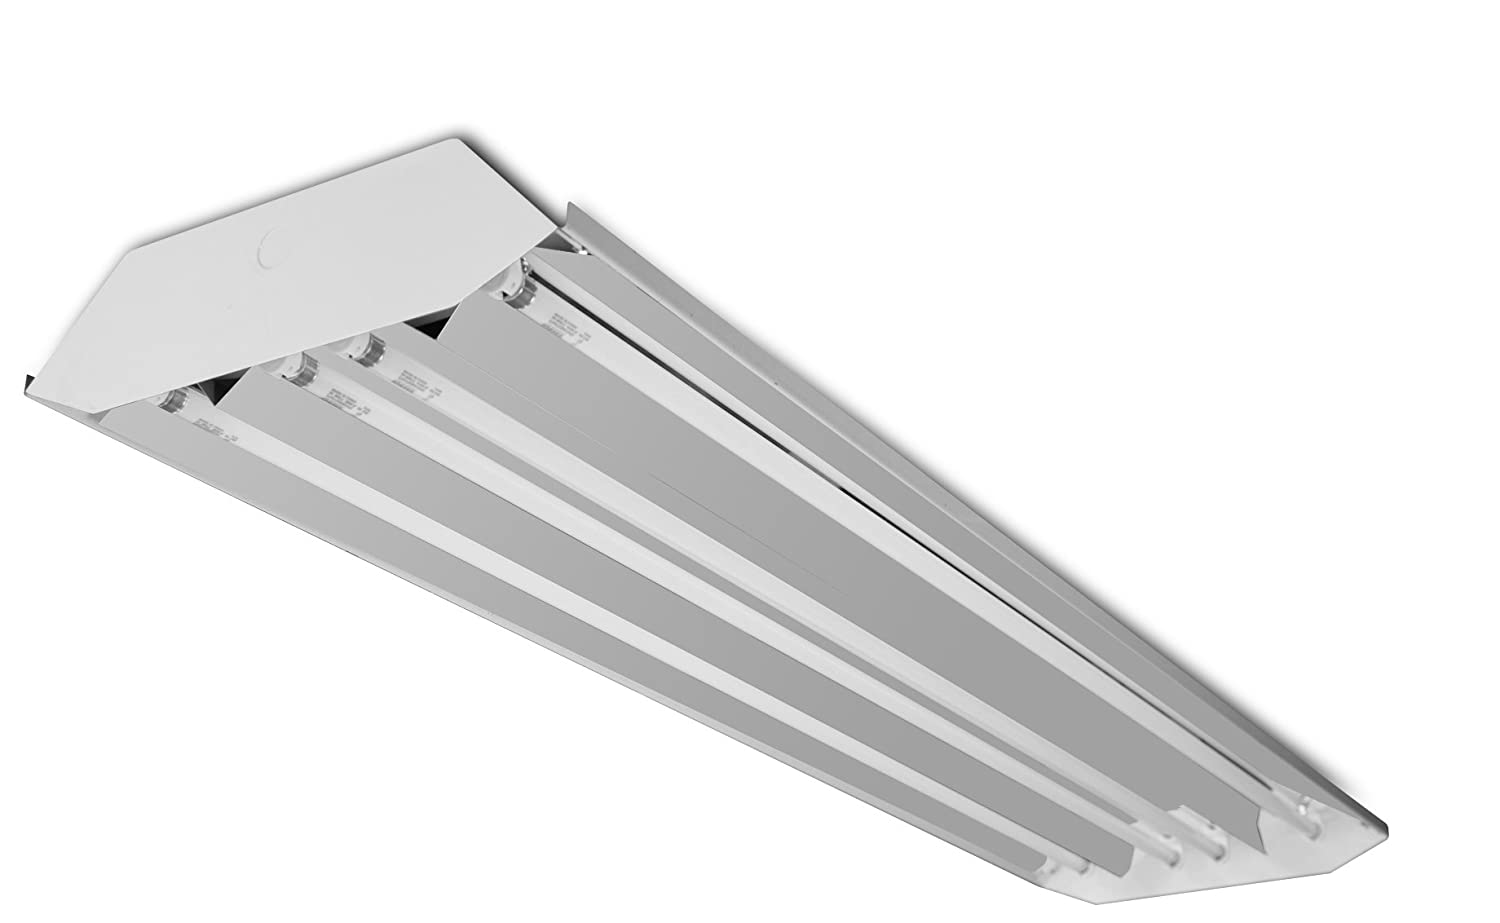 Howard Lighting Products HFB3E432AHEMV000000I 4 Lamp 32W T8 High Bay Fluorescent Fixture B009PWRWLY